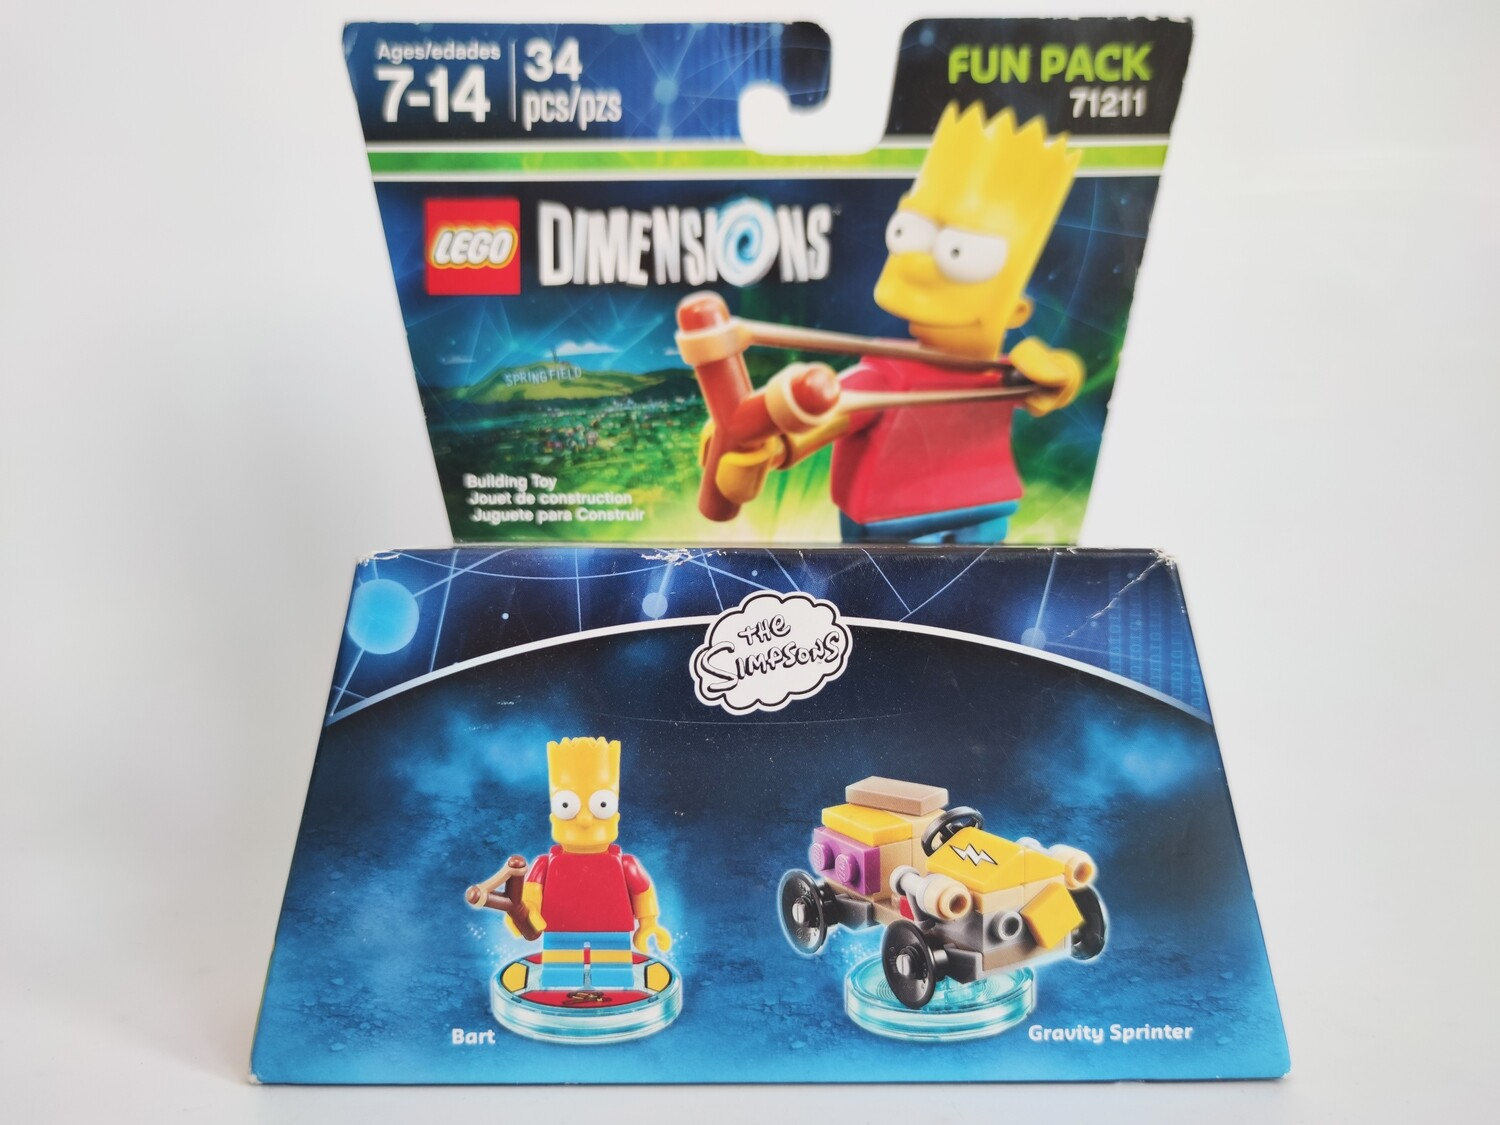 Lego 71211 The Simpsons (Bart and Gravity Sprinter)